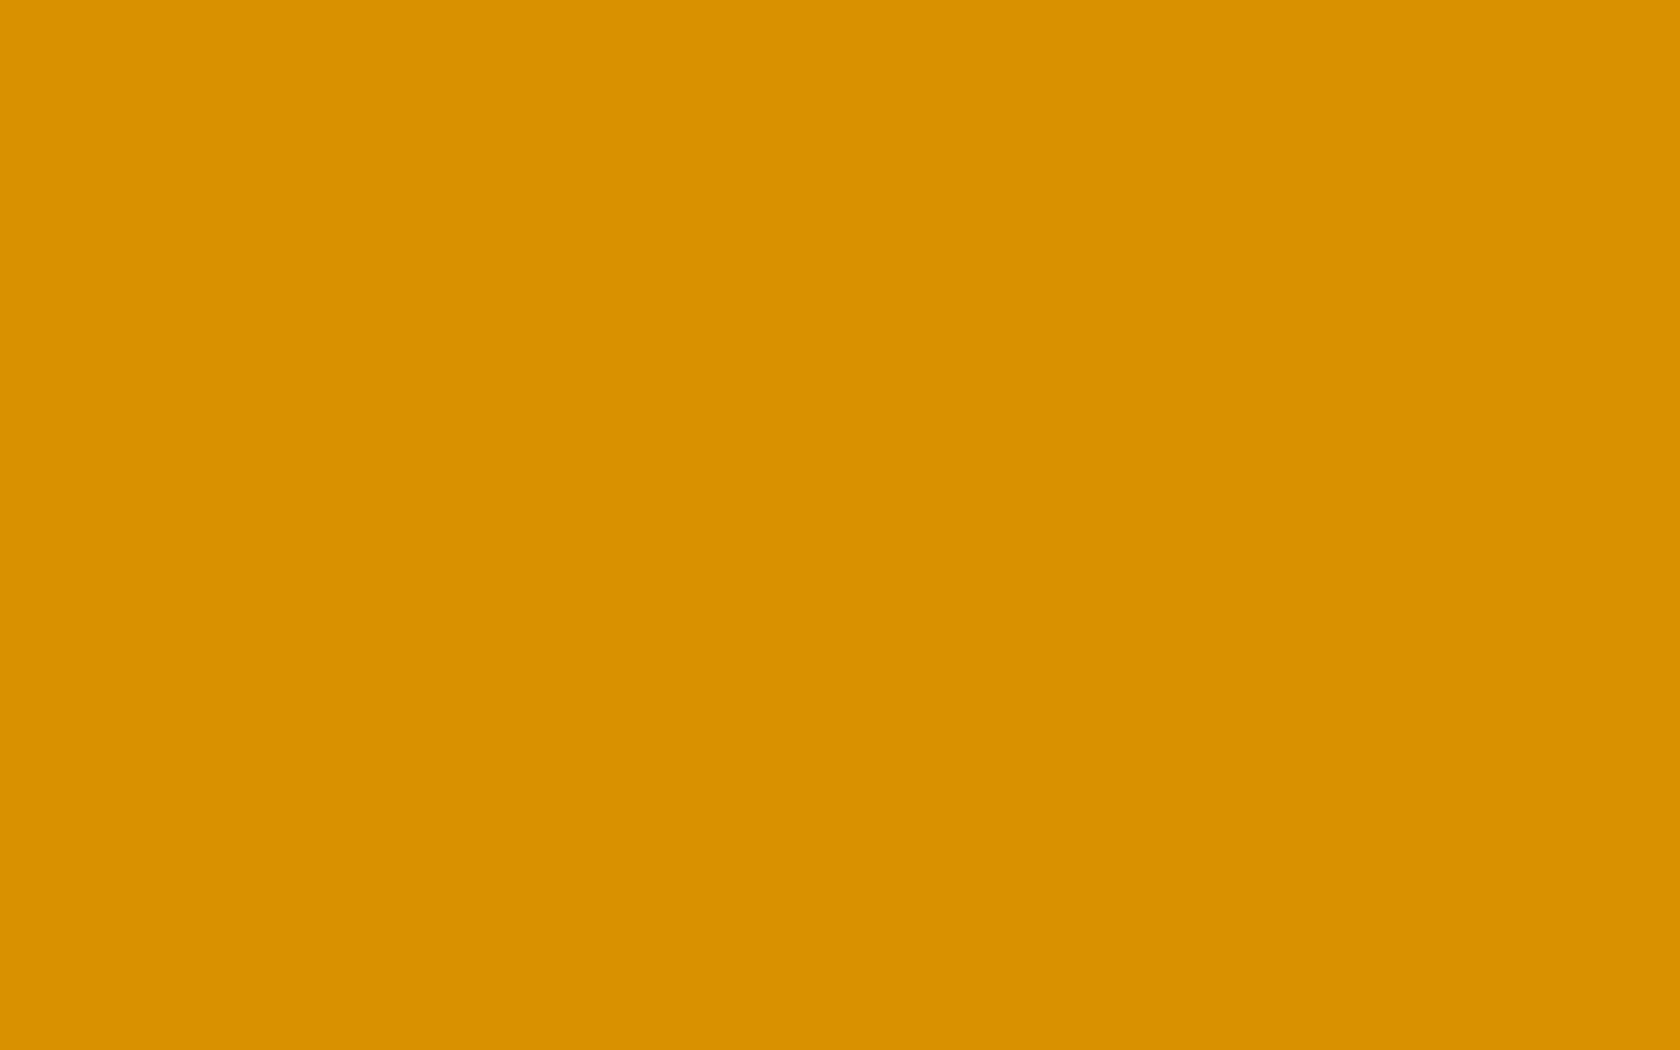 1680x1050 Harvest Gold Solid Color Background